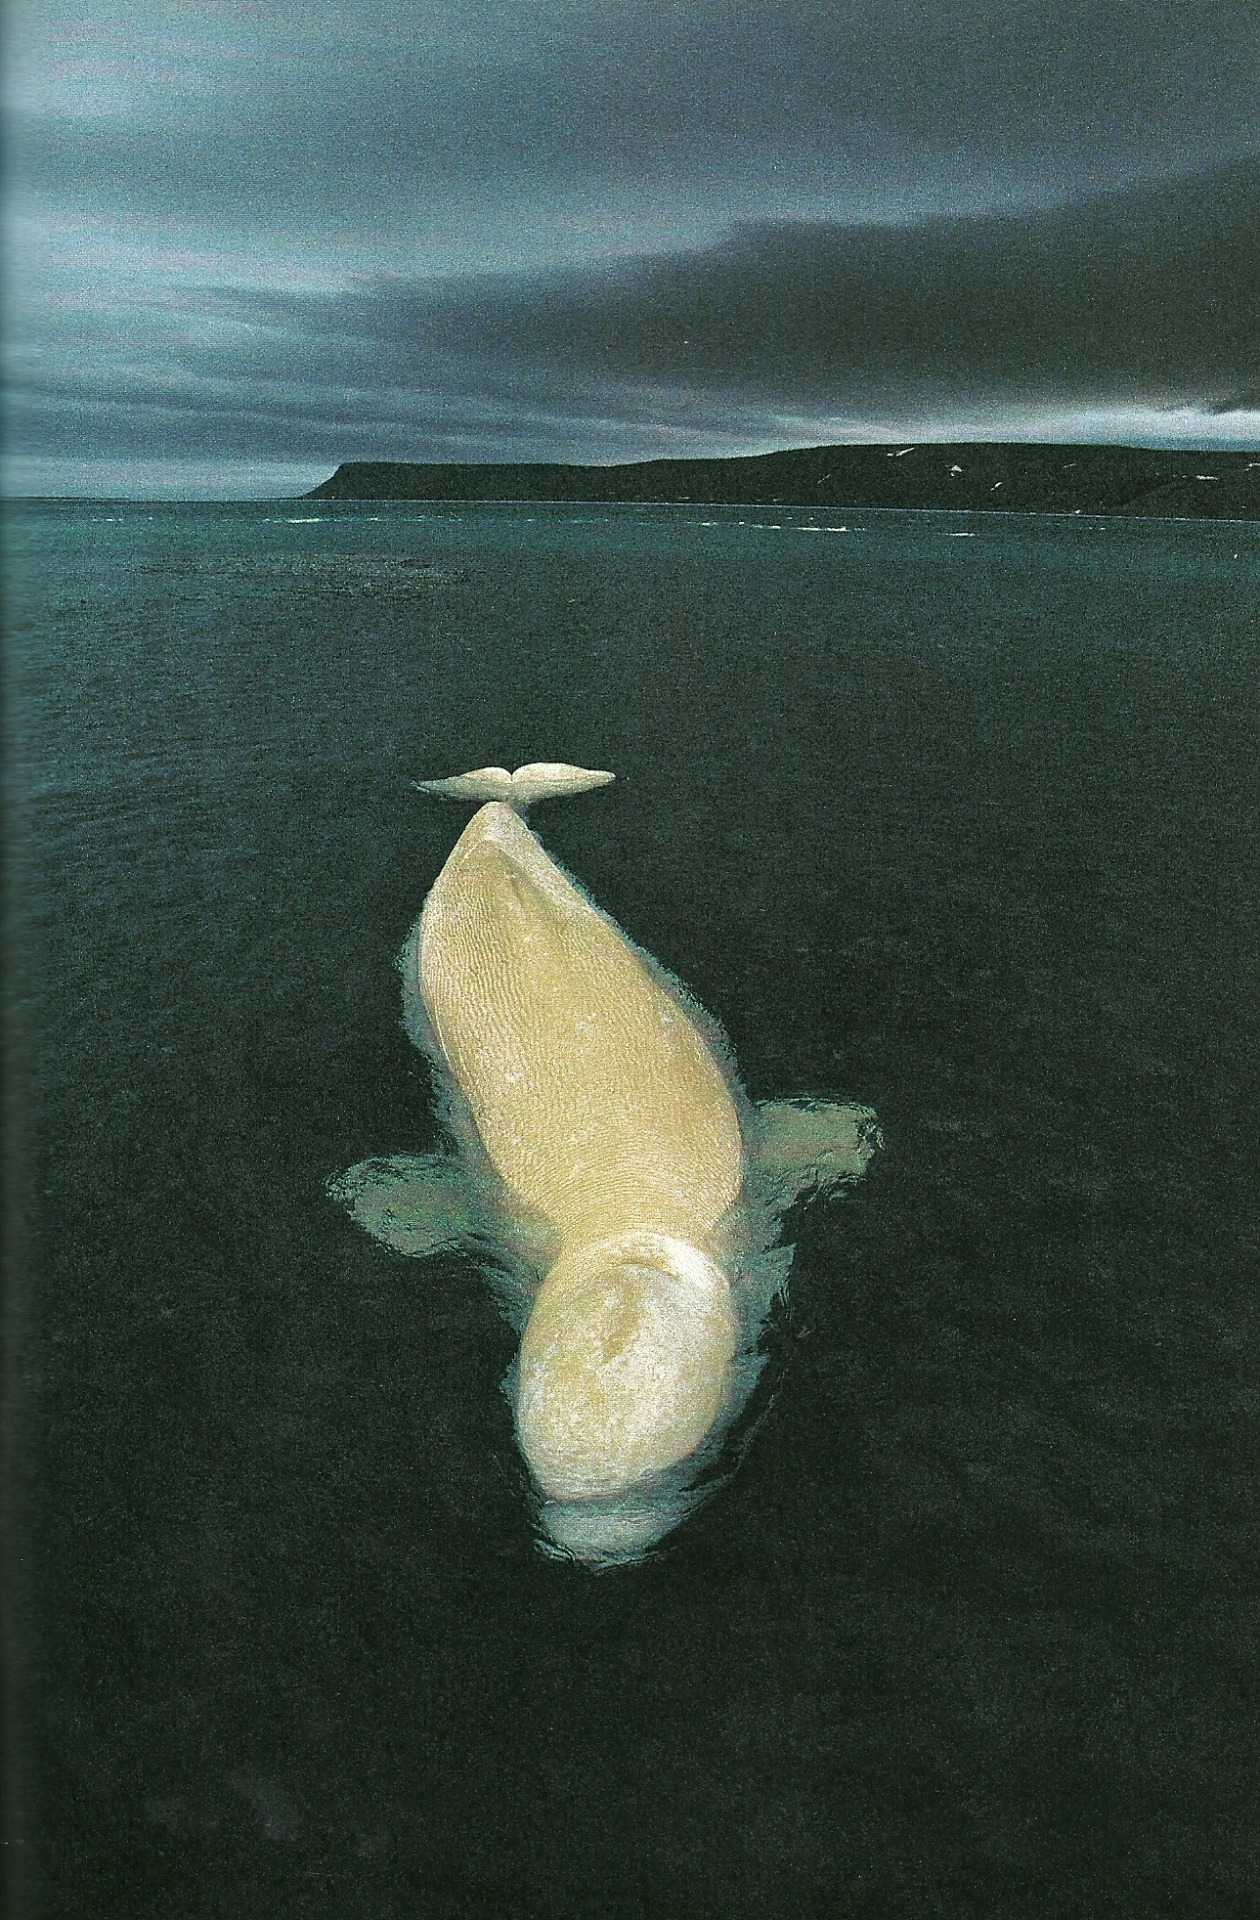 vintagenatgeographic:  Female beluga whale in Cunningham Inlet, Canada National Geographic | June 1994